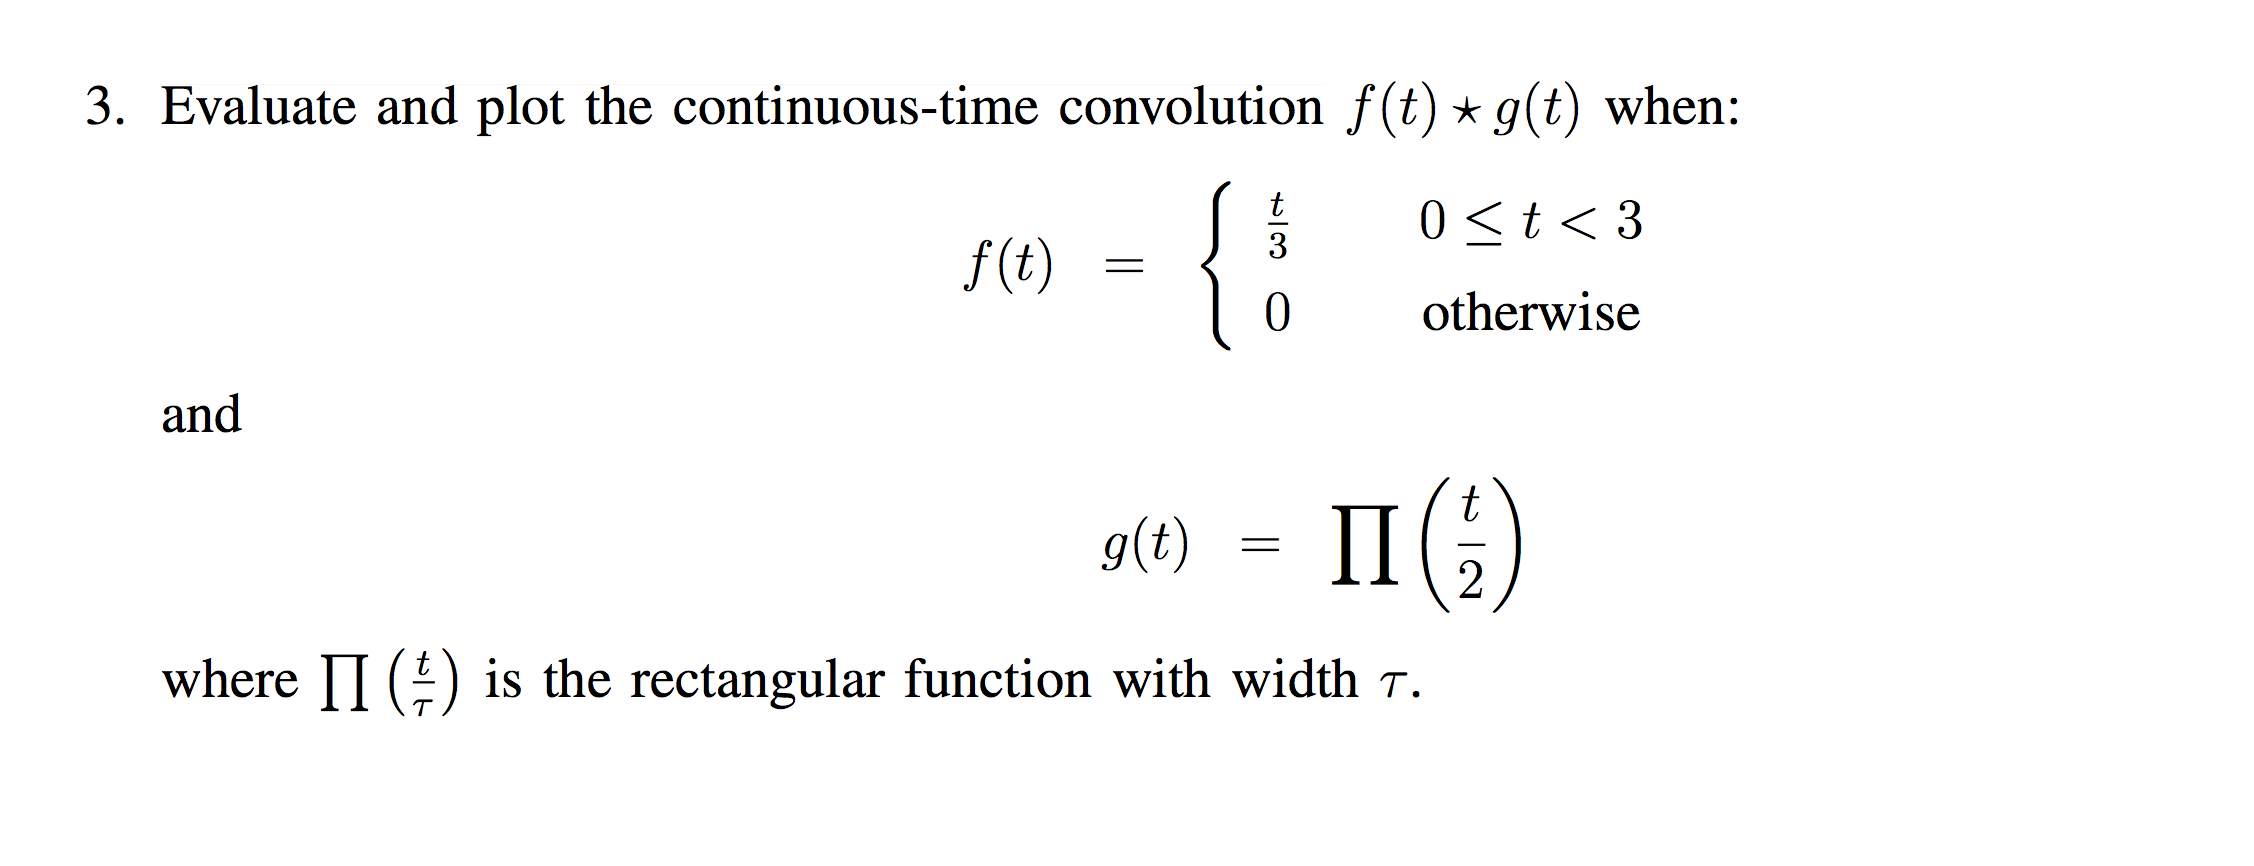 If im trying to evaultion this function to find th